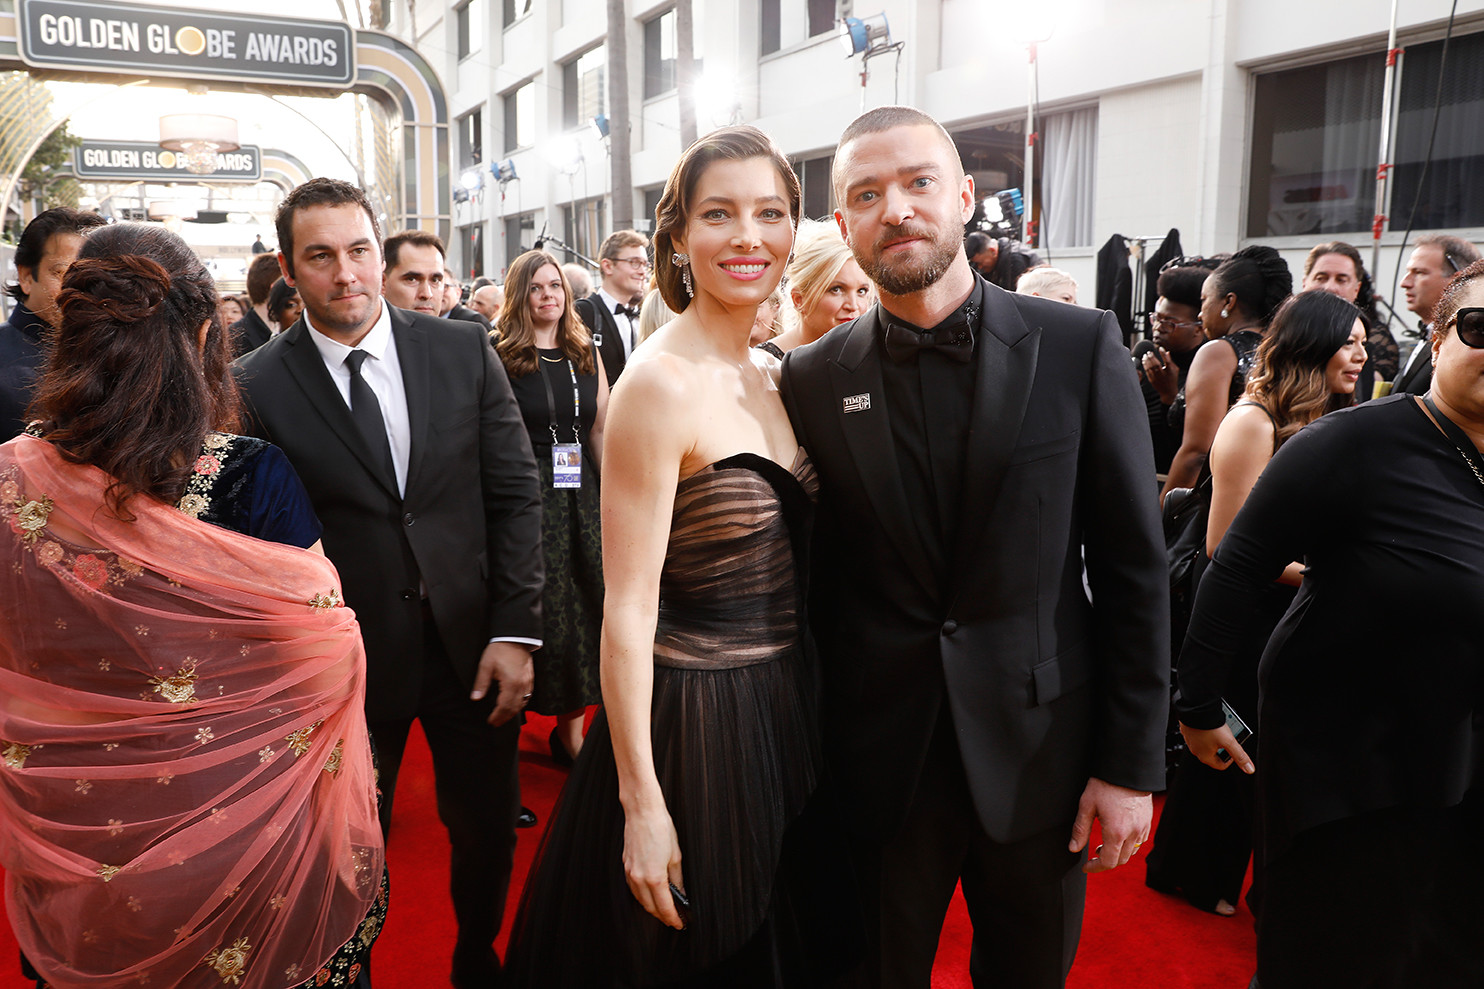 Jessica Biel Didn't Like or Listen to NSYNC Growing Up—and Didn't Own Any of Justin Timberlake's CDs